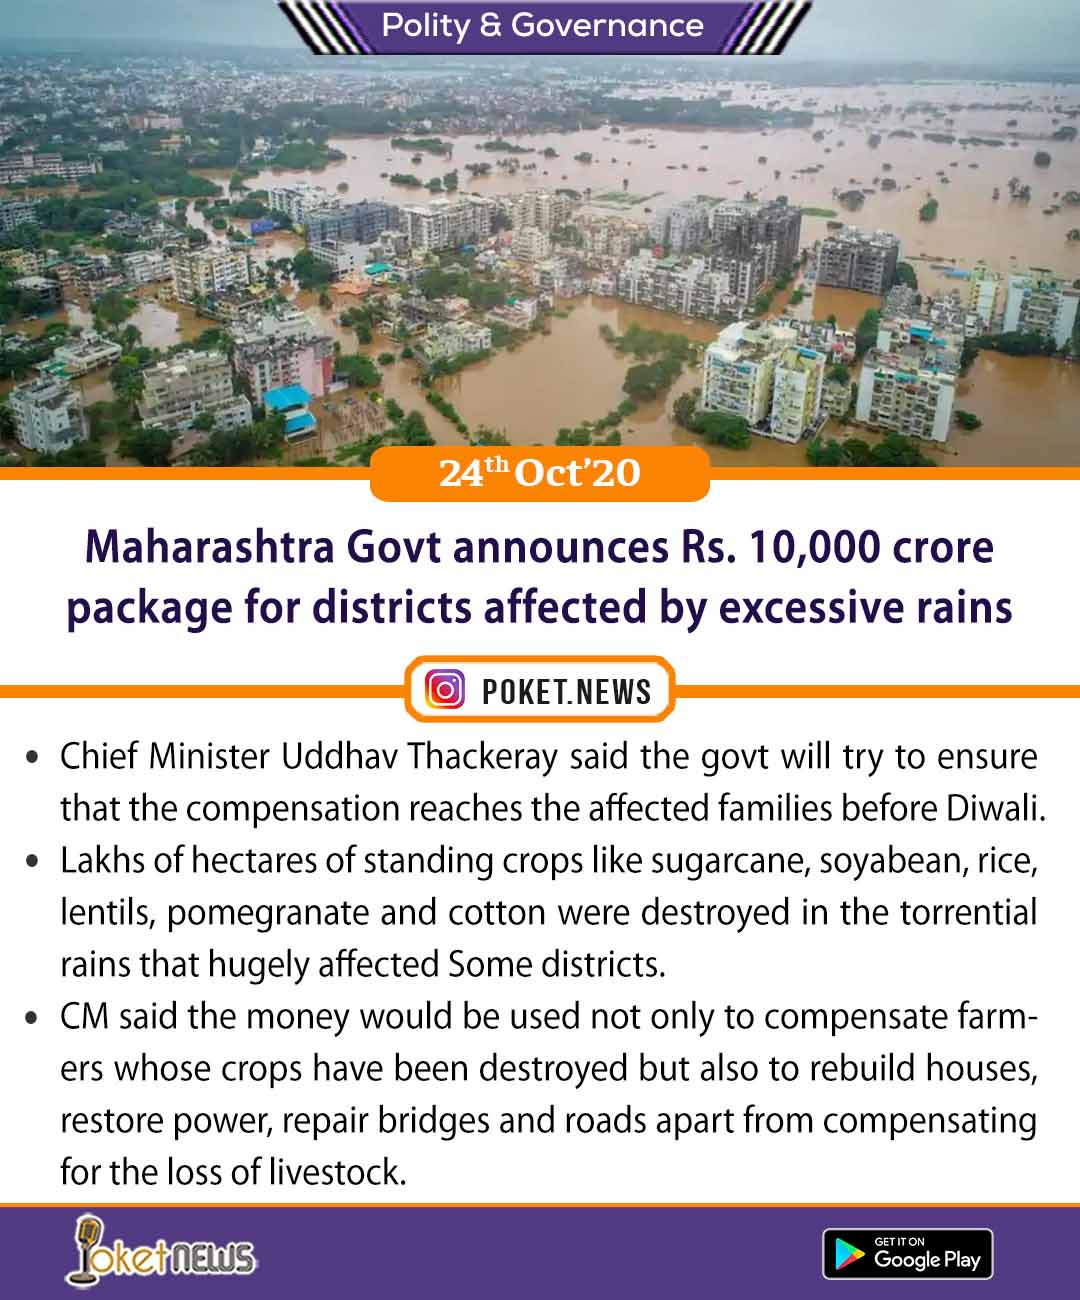 Maharashtra Govt announces Rs. 10,000 crore package for districts affected by excessive rains